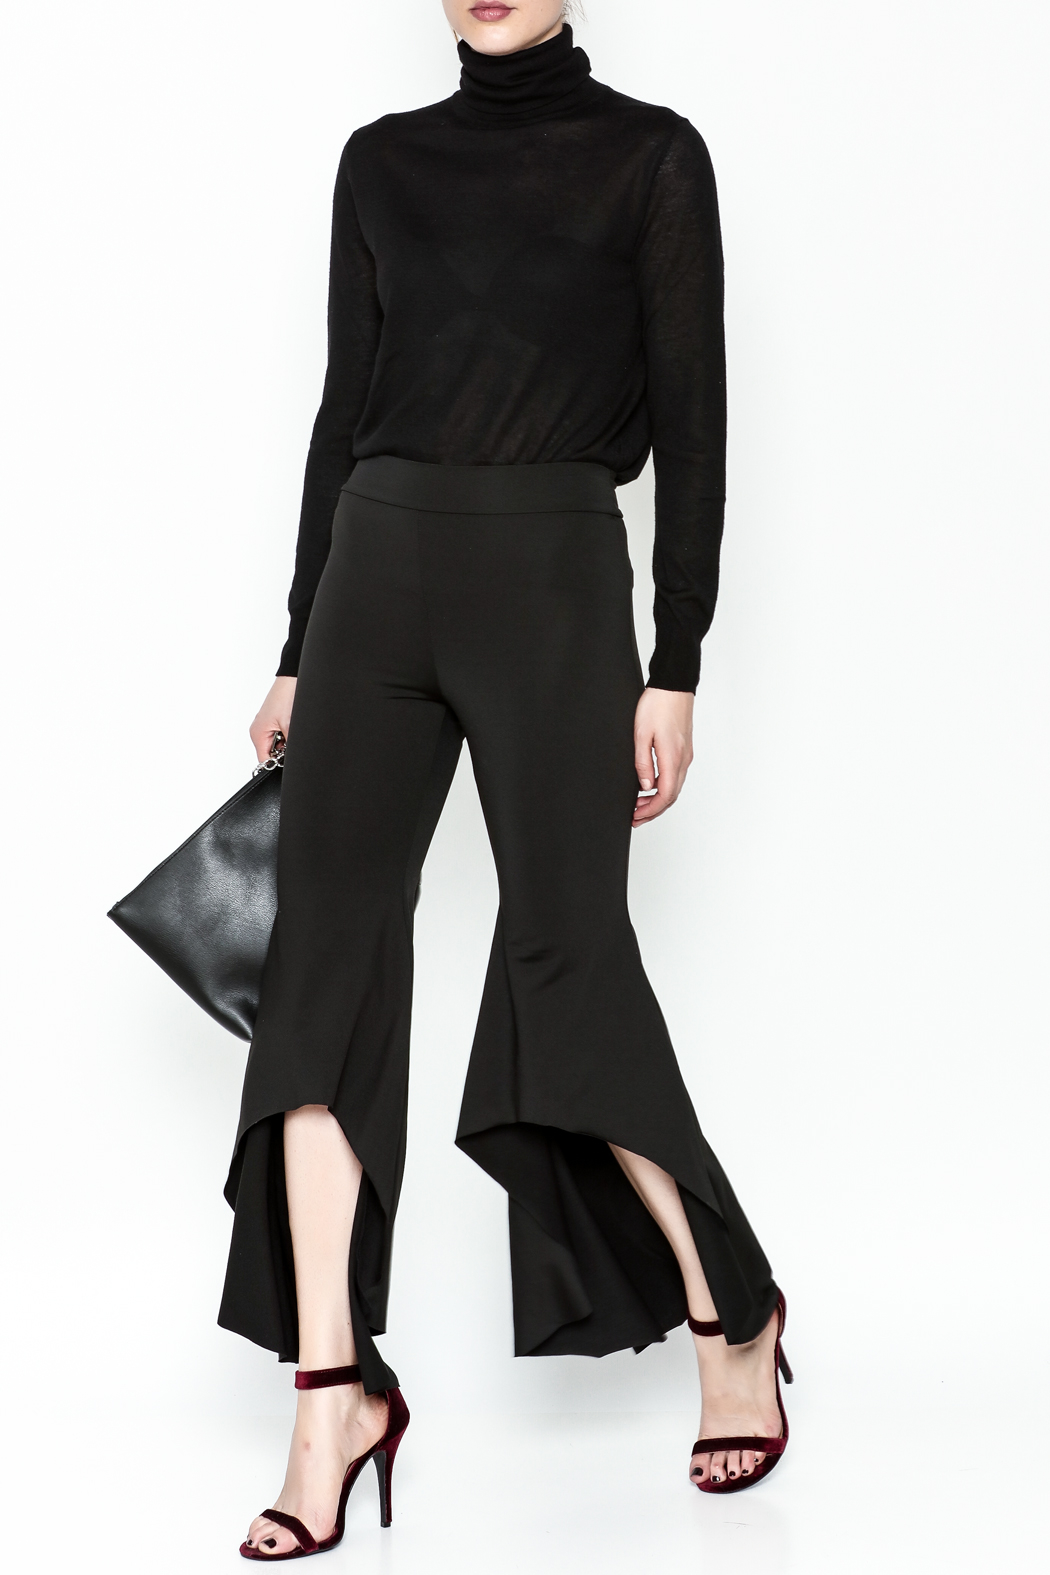 LIFTED Boutique Black High Low Pants - Side Cropped Image